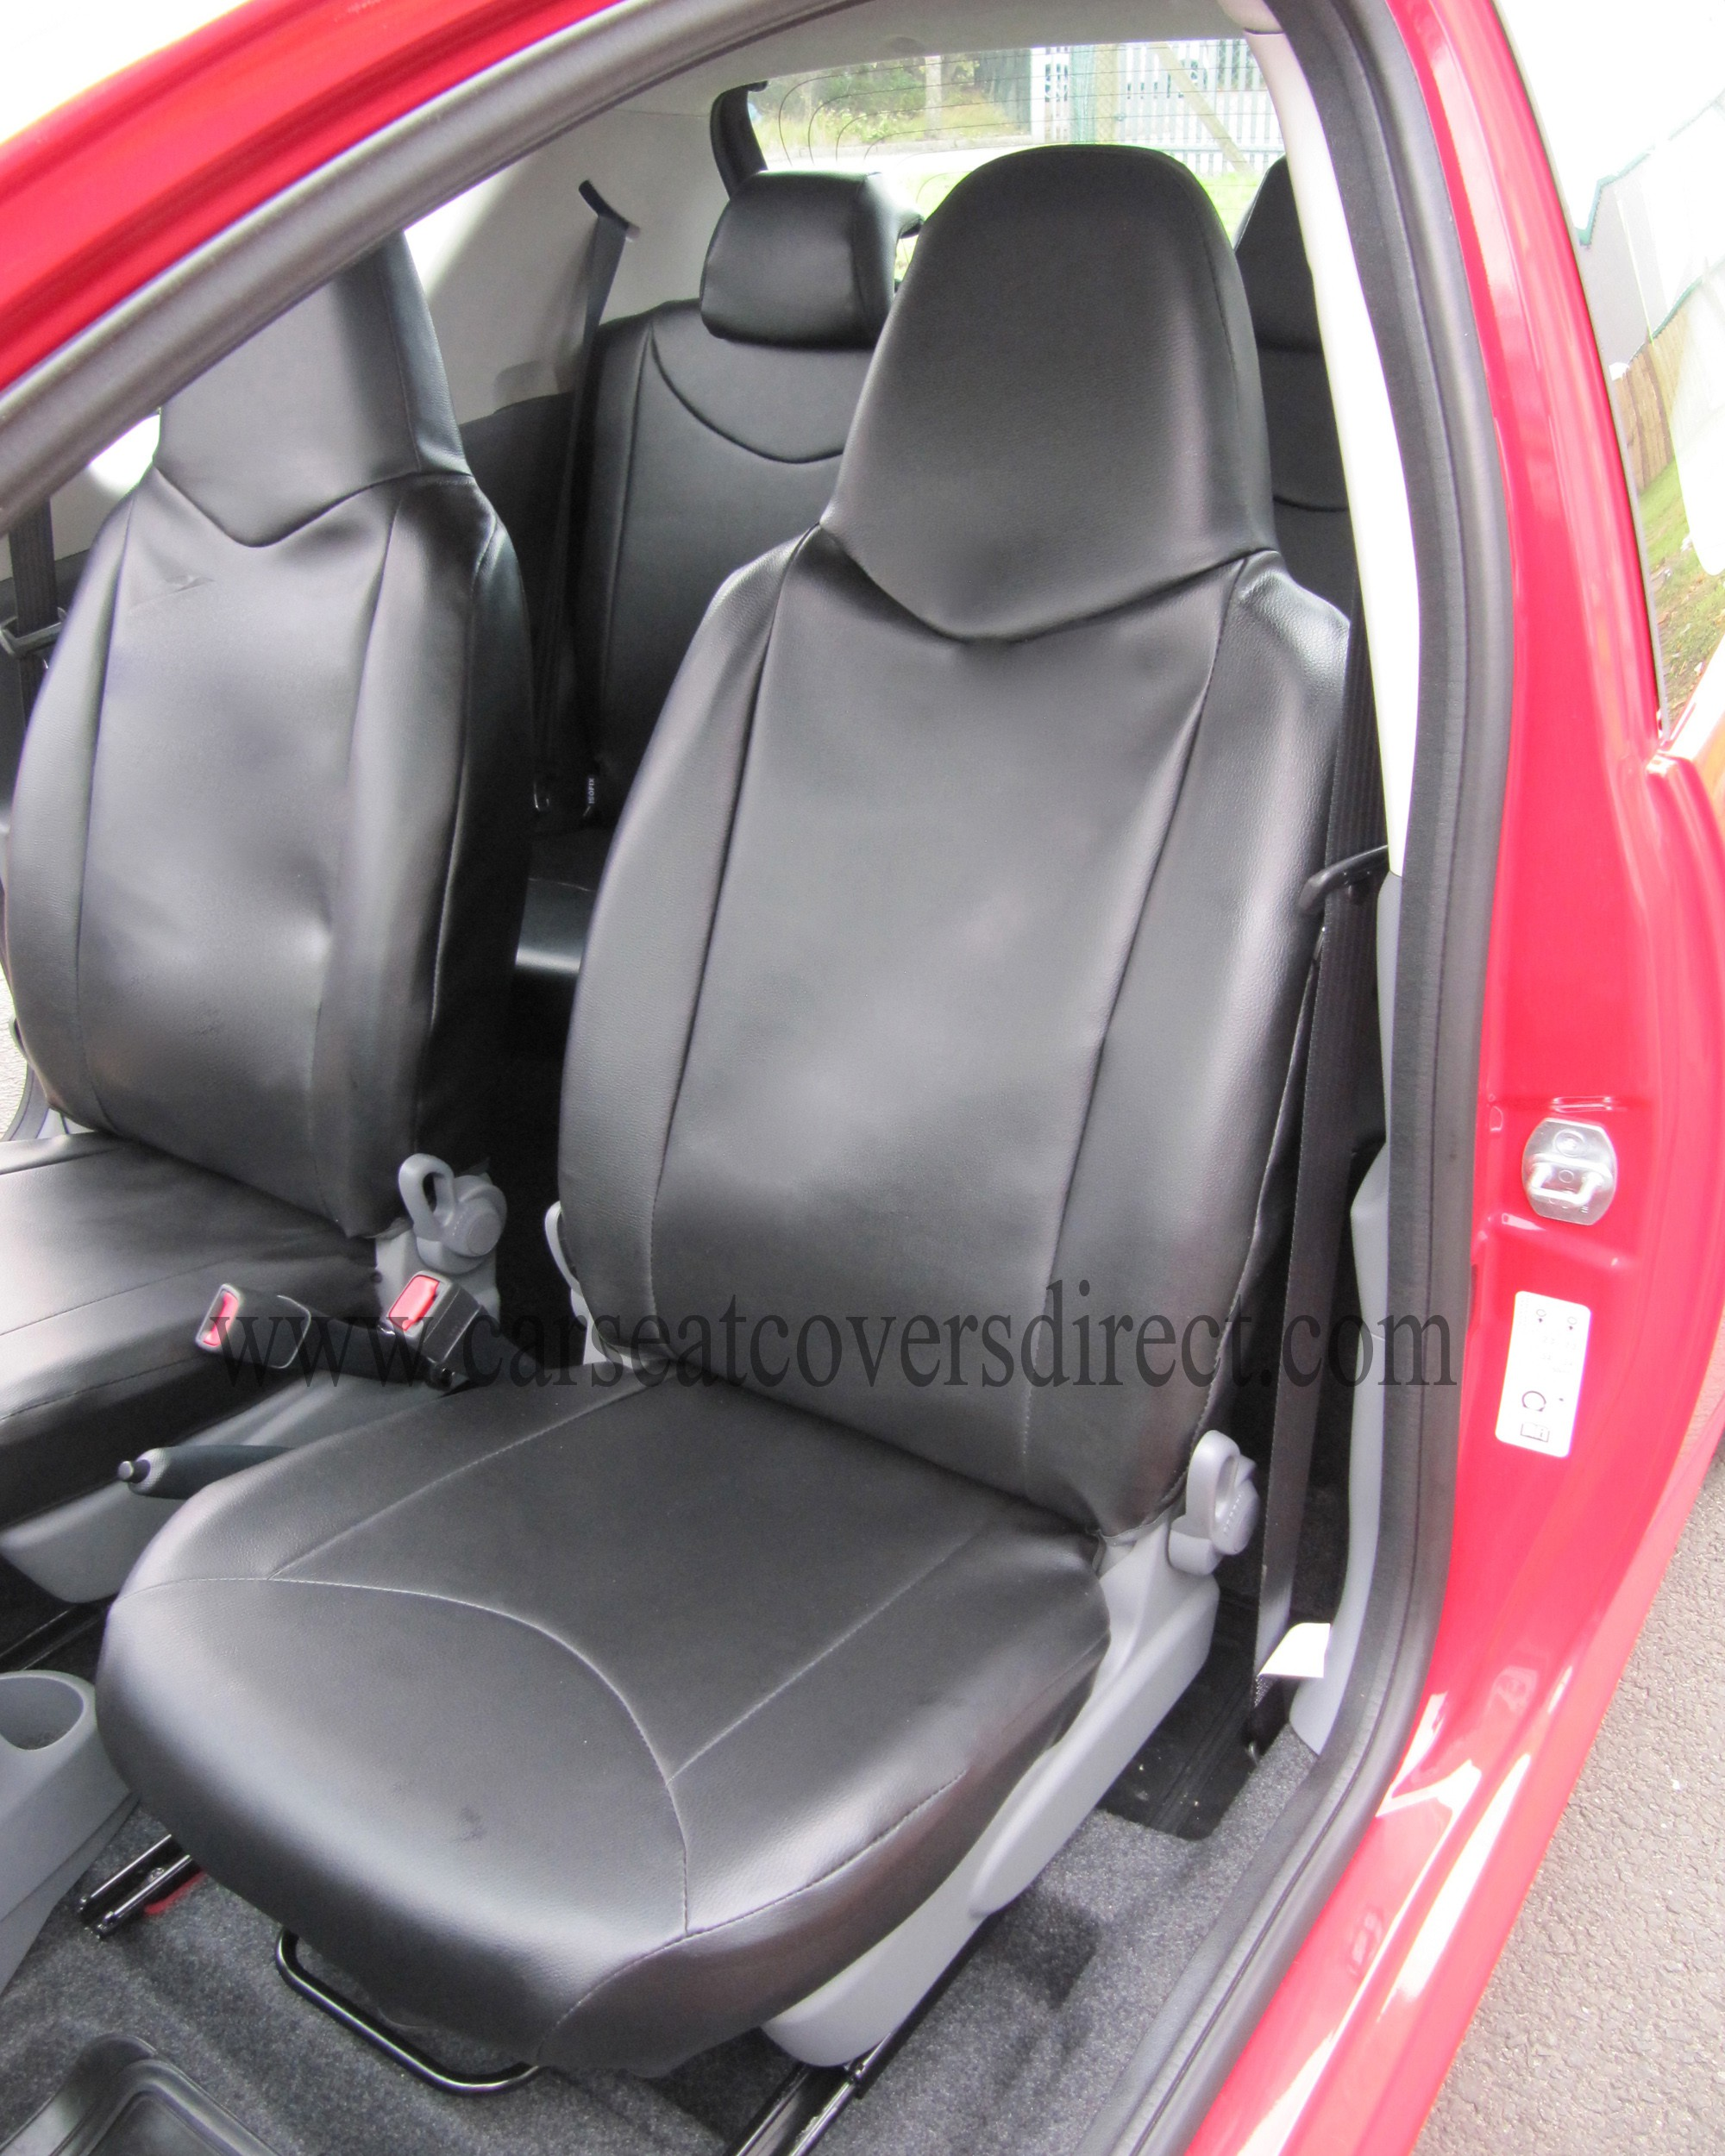 Citroen C1 1st Gen (2005-2014) Seat Covers